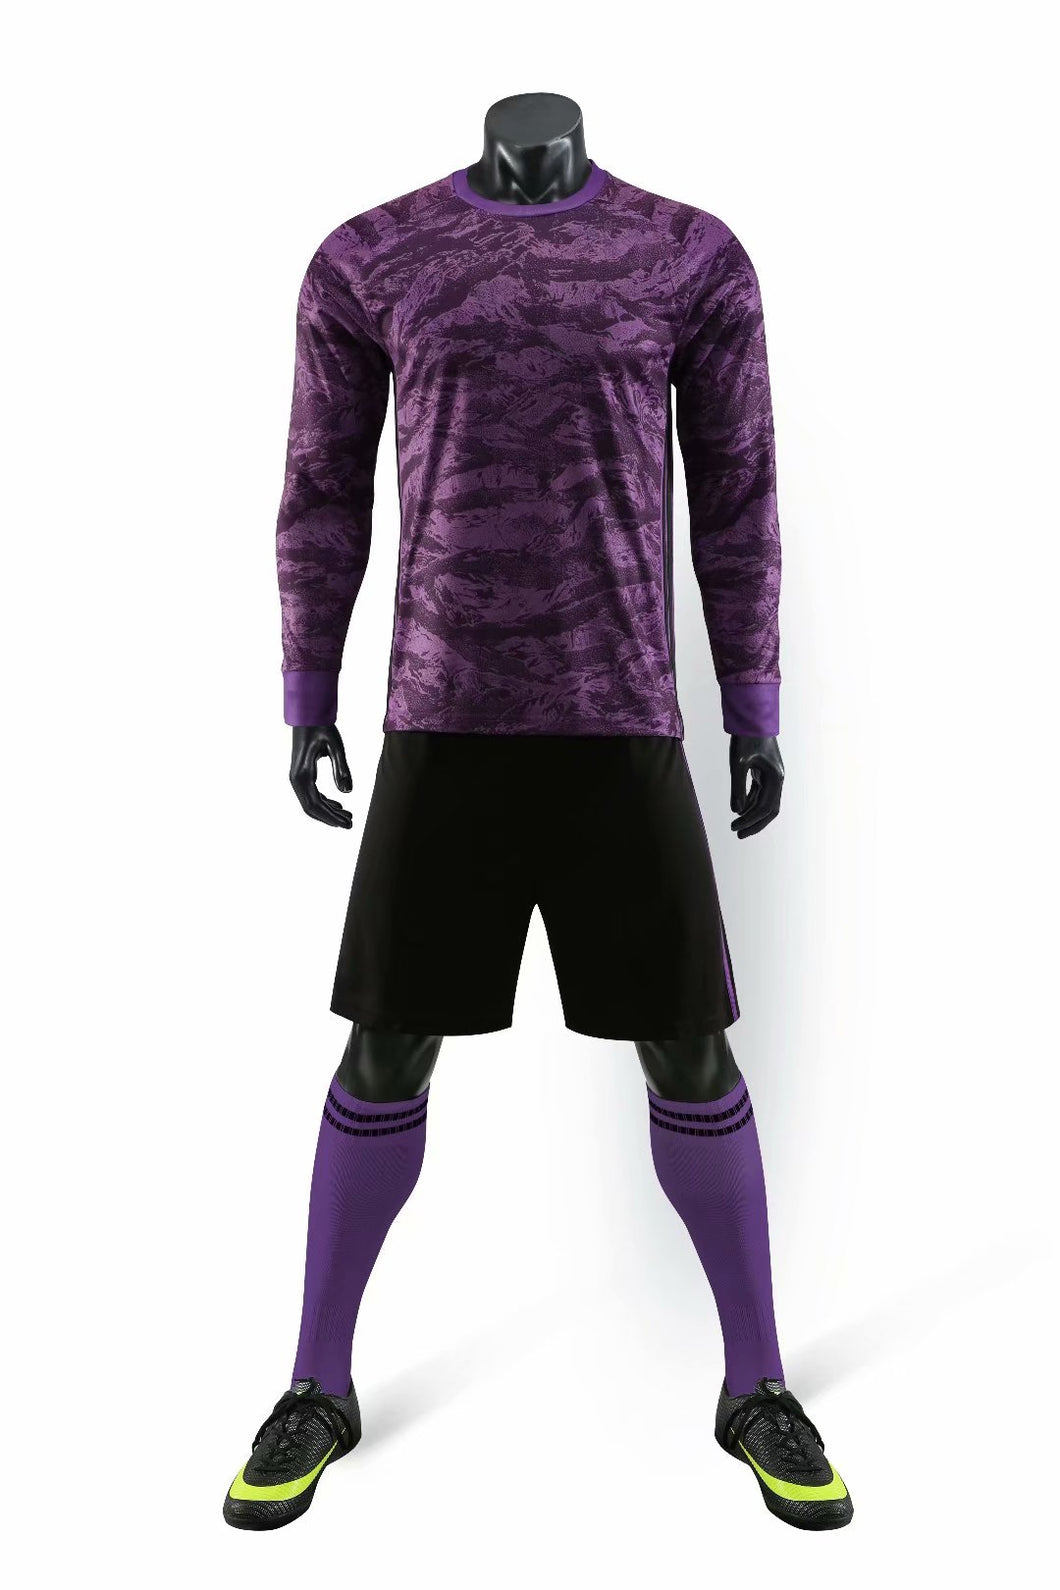 Full Football Kit - Purple Mixed Colour Long Sleeve.